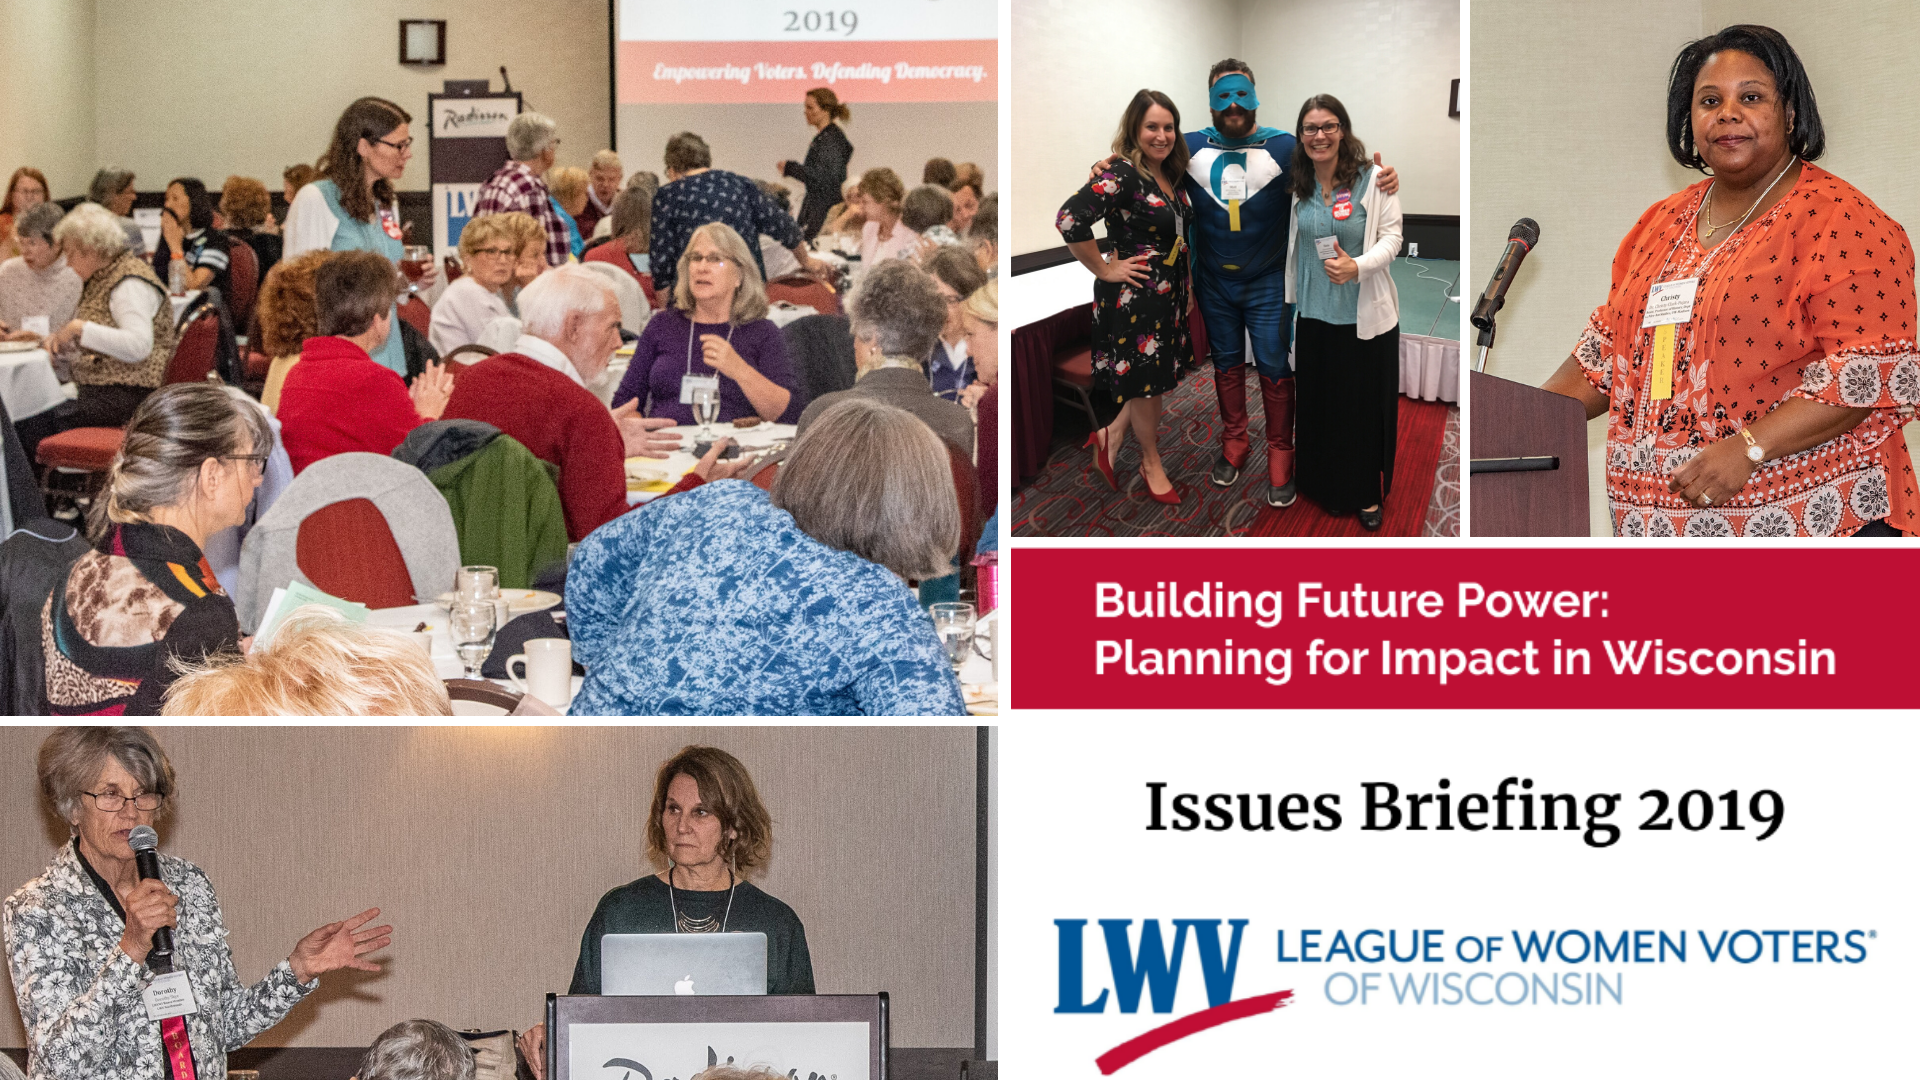 Collage of images taken at LWVWI's 2019 Issues Briefing event